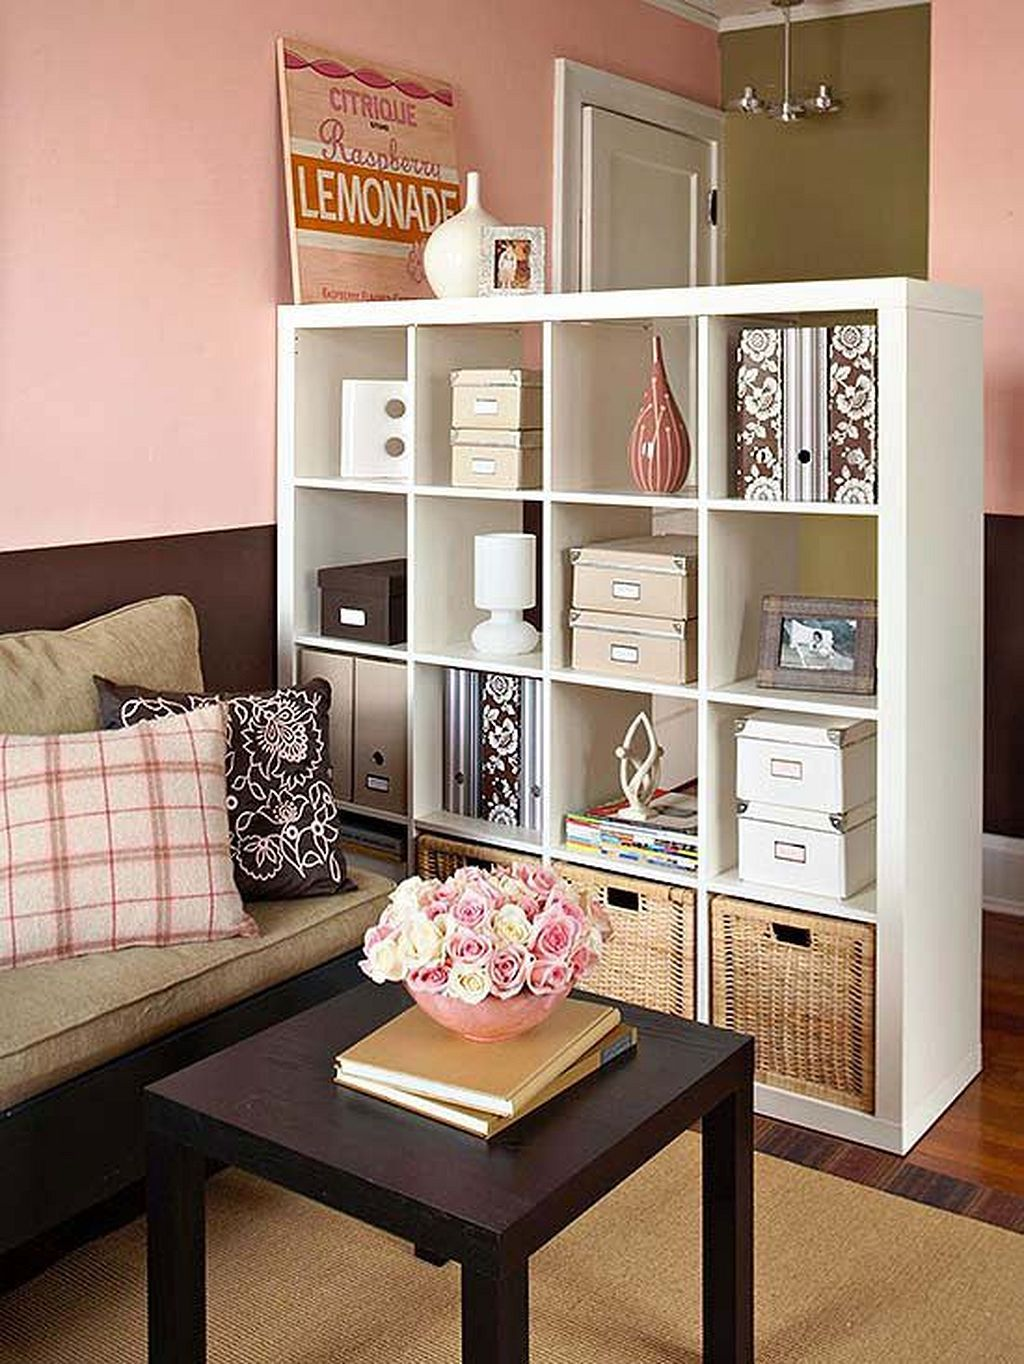 87 Smart and Easy Small Apartment Organization Ideas ...